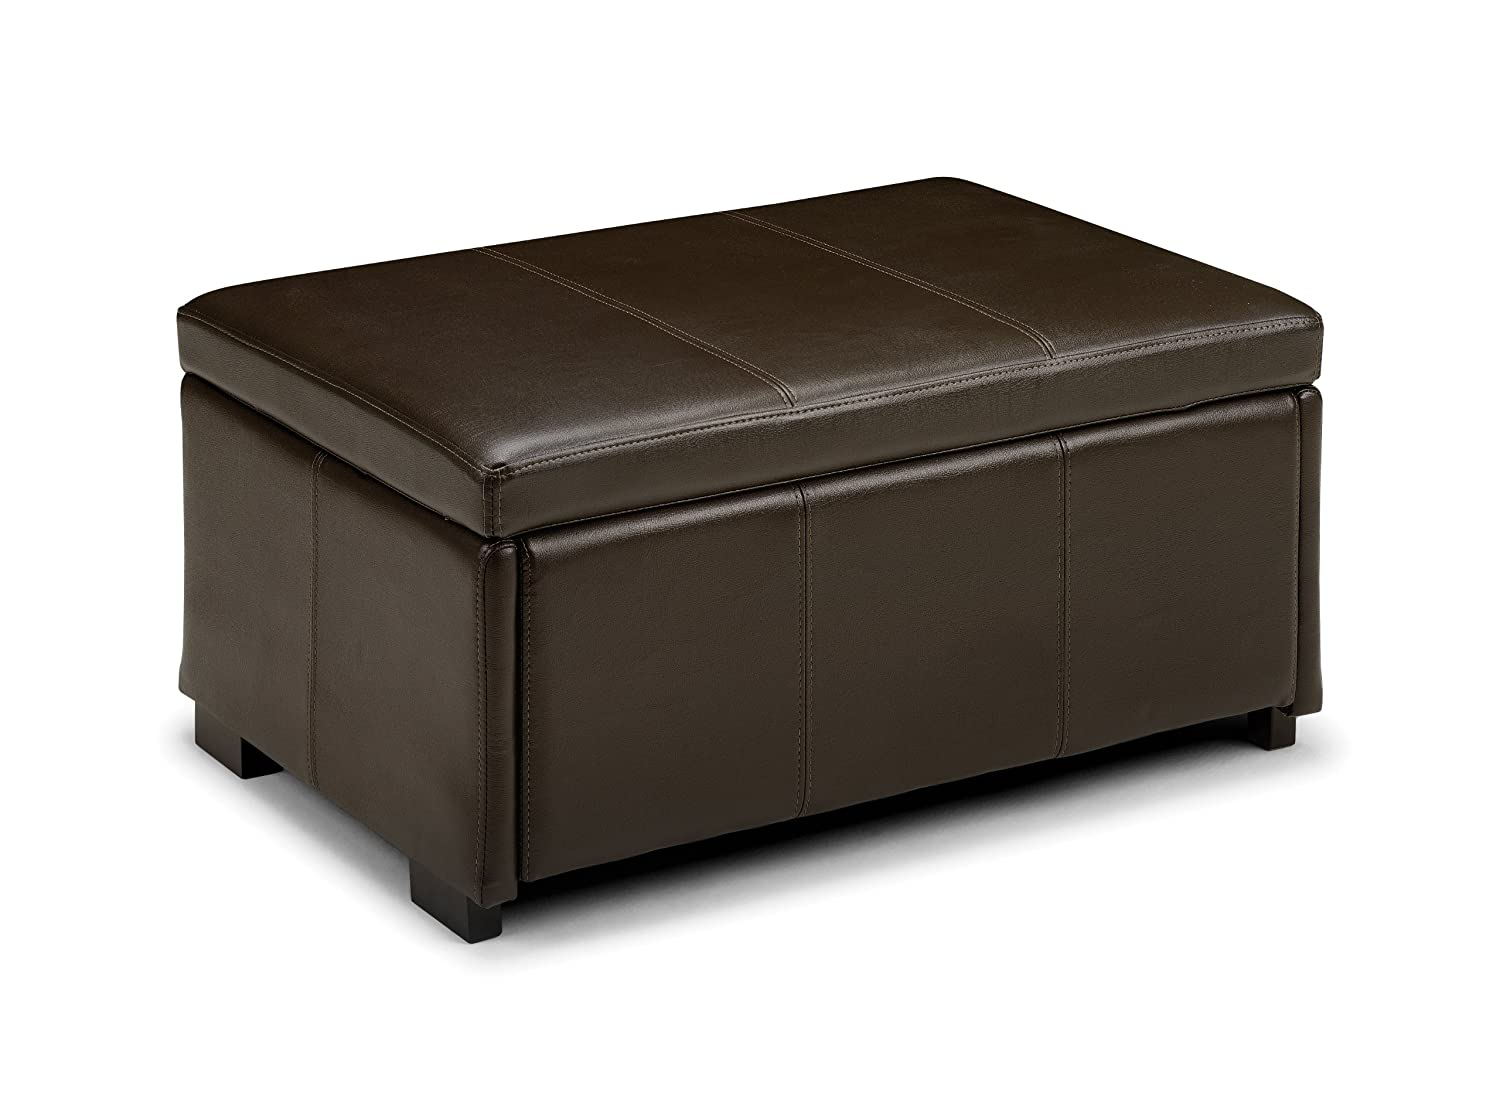 Julian Bowen Vienna Faux Leather Ottoman Brown Amazon.co.uk Kitchen u0026 Home  sc 1 st  Amazon UK & Julian Bowen Vienna Faux Leather Ottoman Brown: Amazon.co.uk ...